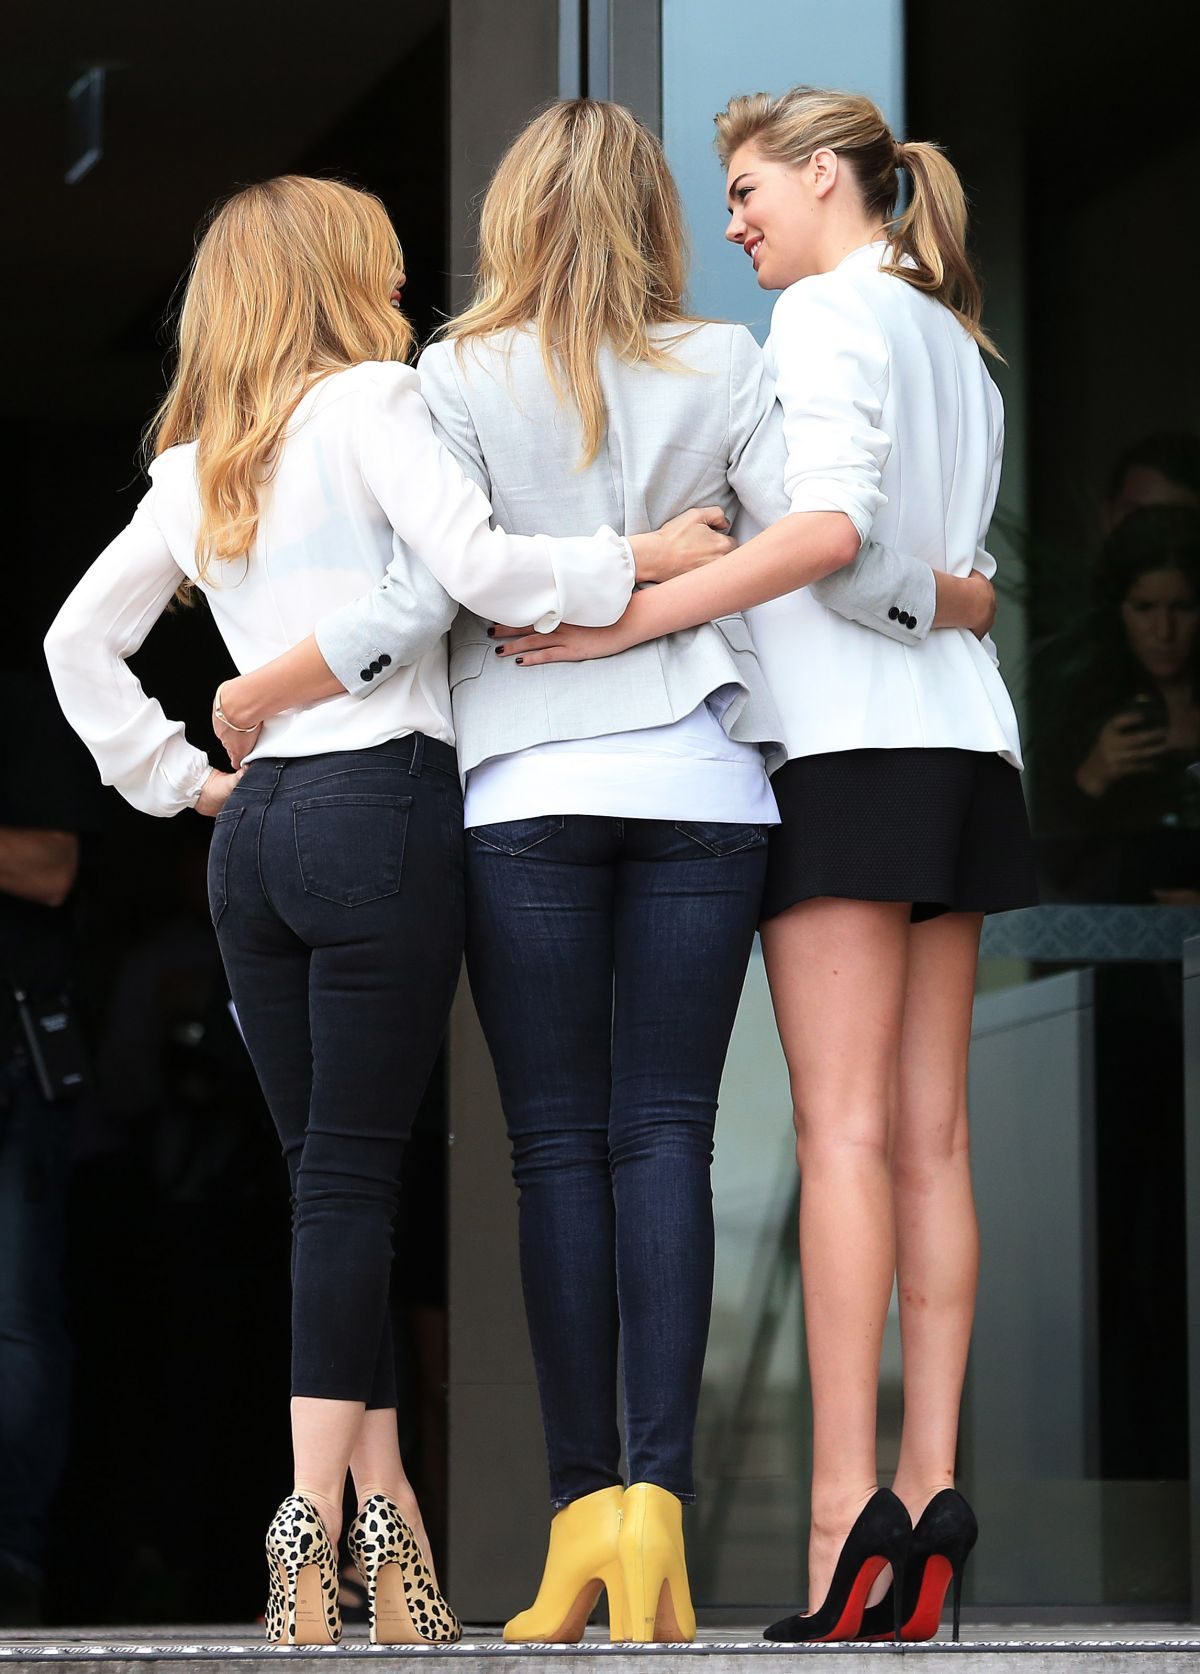 Cameron Diaz, Leslie Mann And Kate Upton At The Other -2299